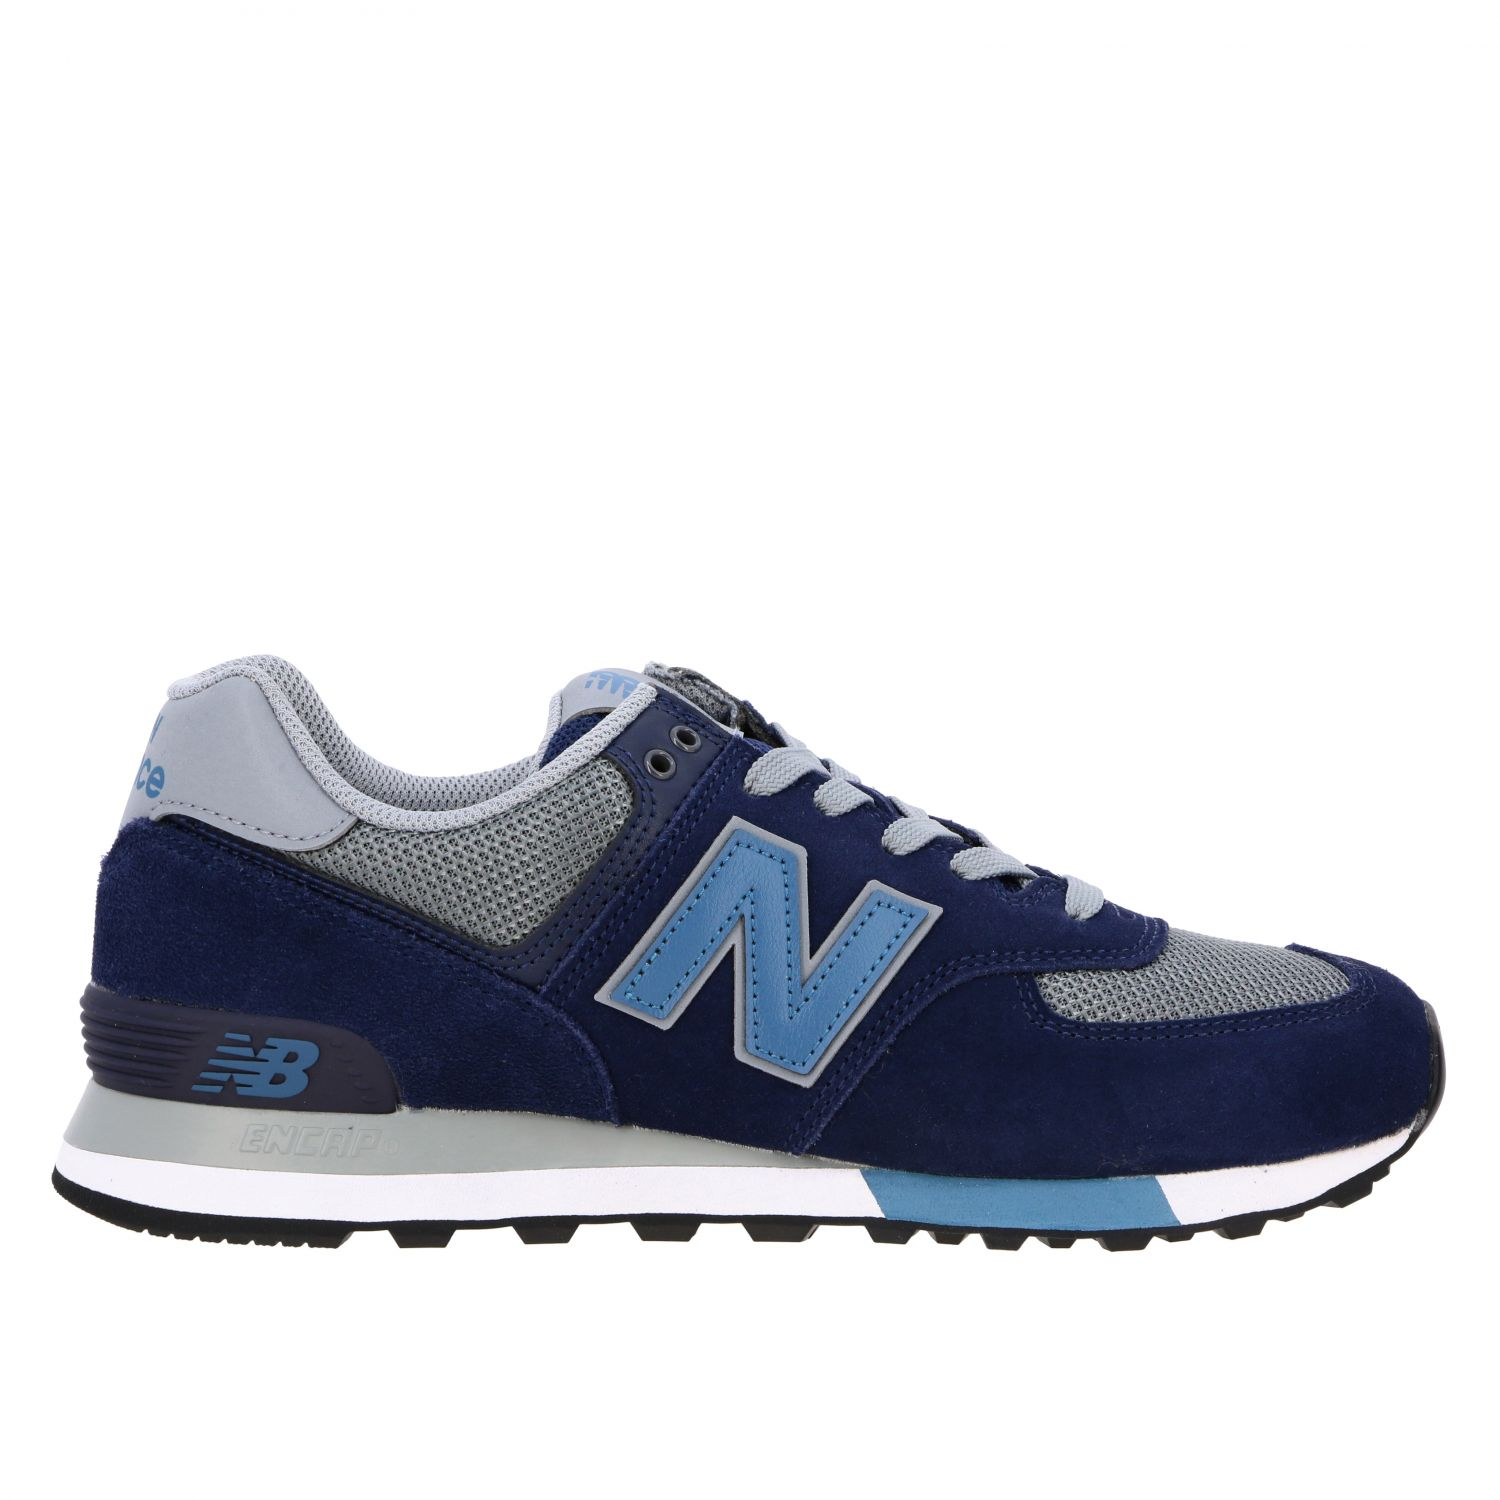 Baskets 574 New Balance en daim et filet contrastés bleu 1